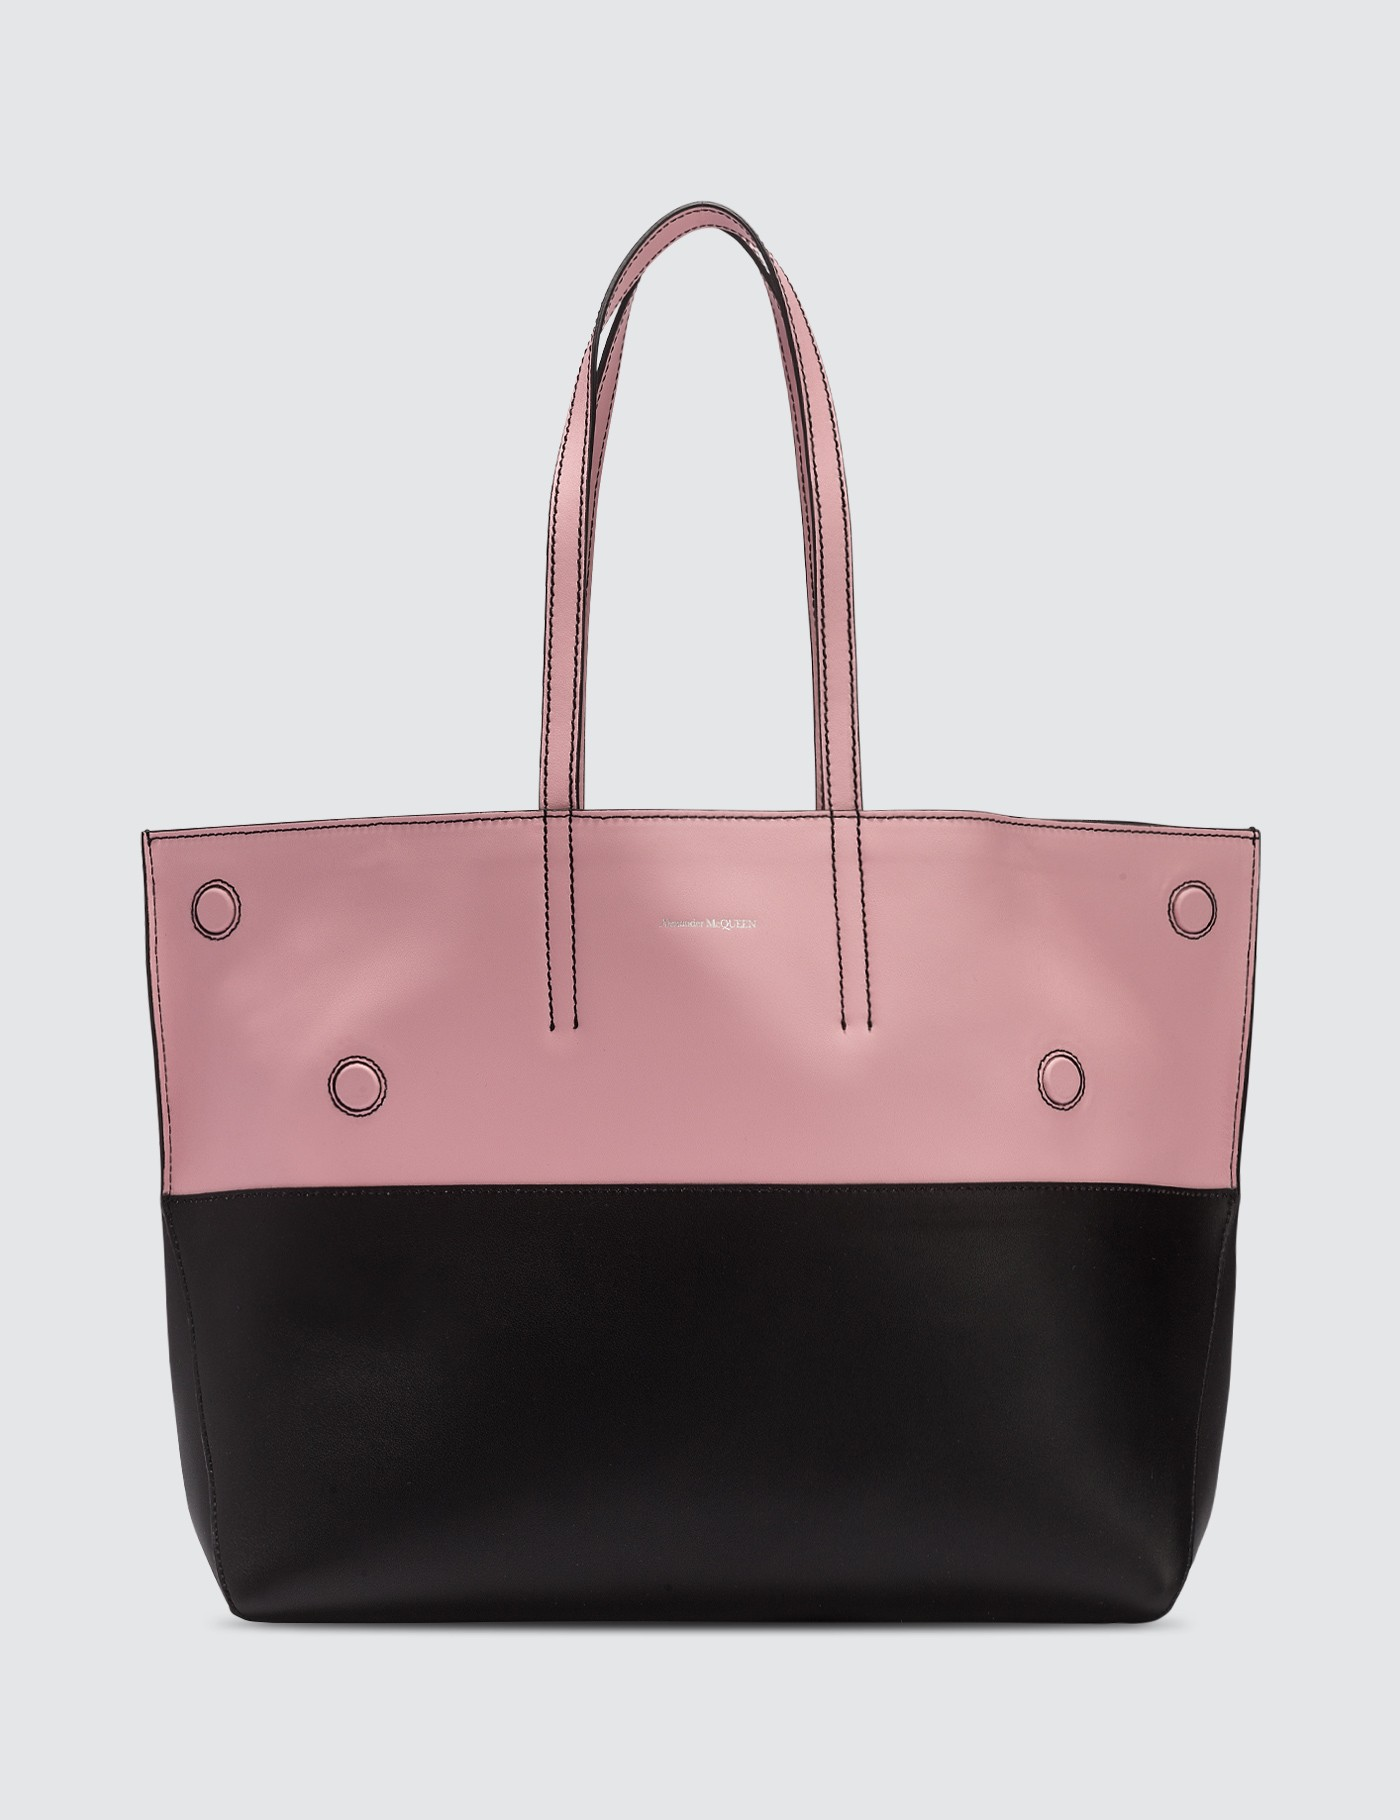 elegant appearance look for exquisite design Butterfly Tote Bag, Alexander McQueen